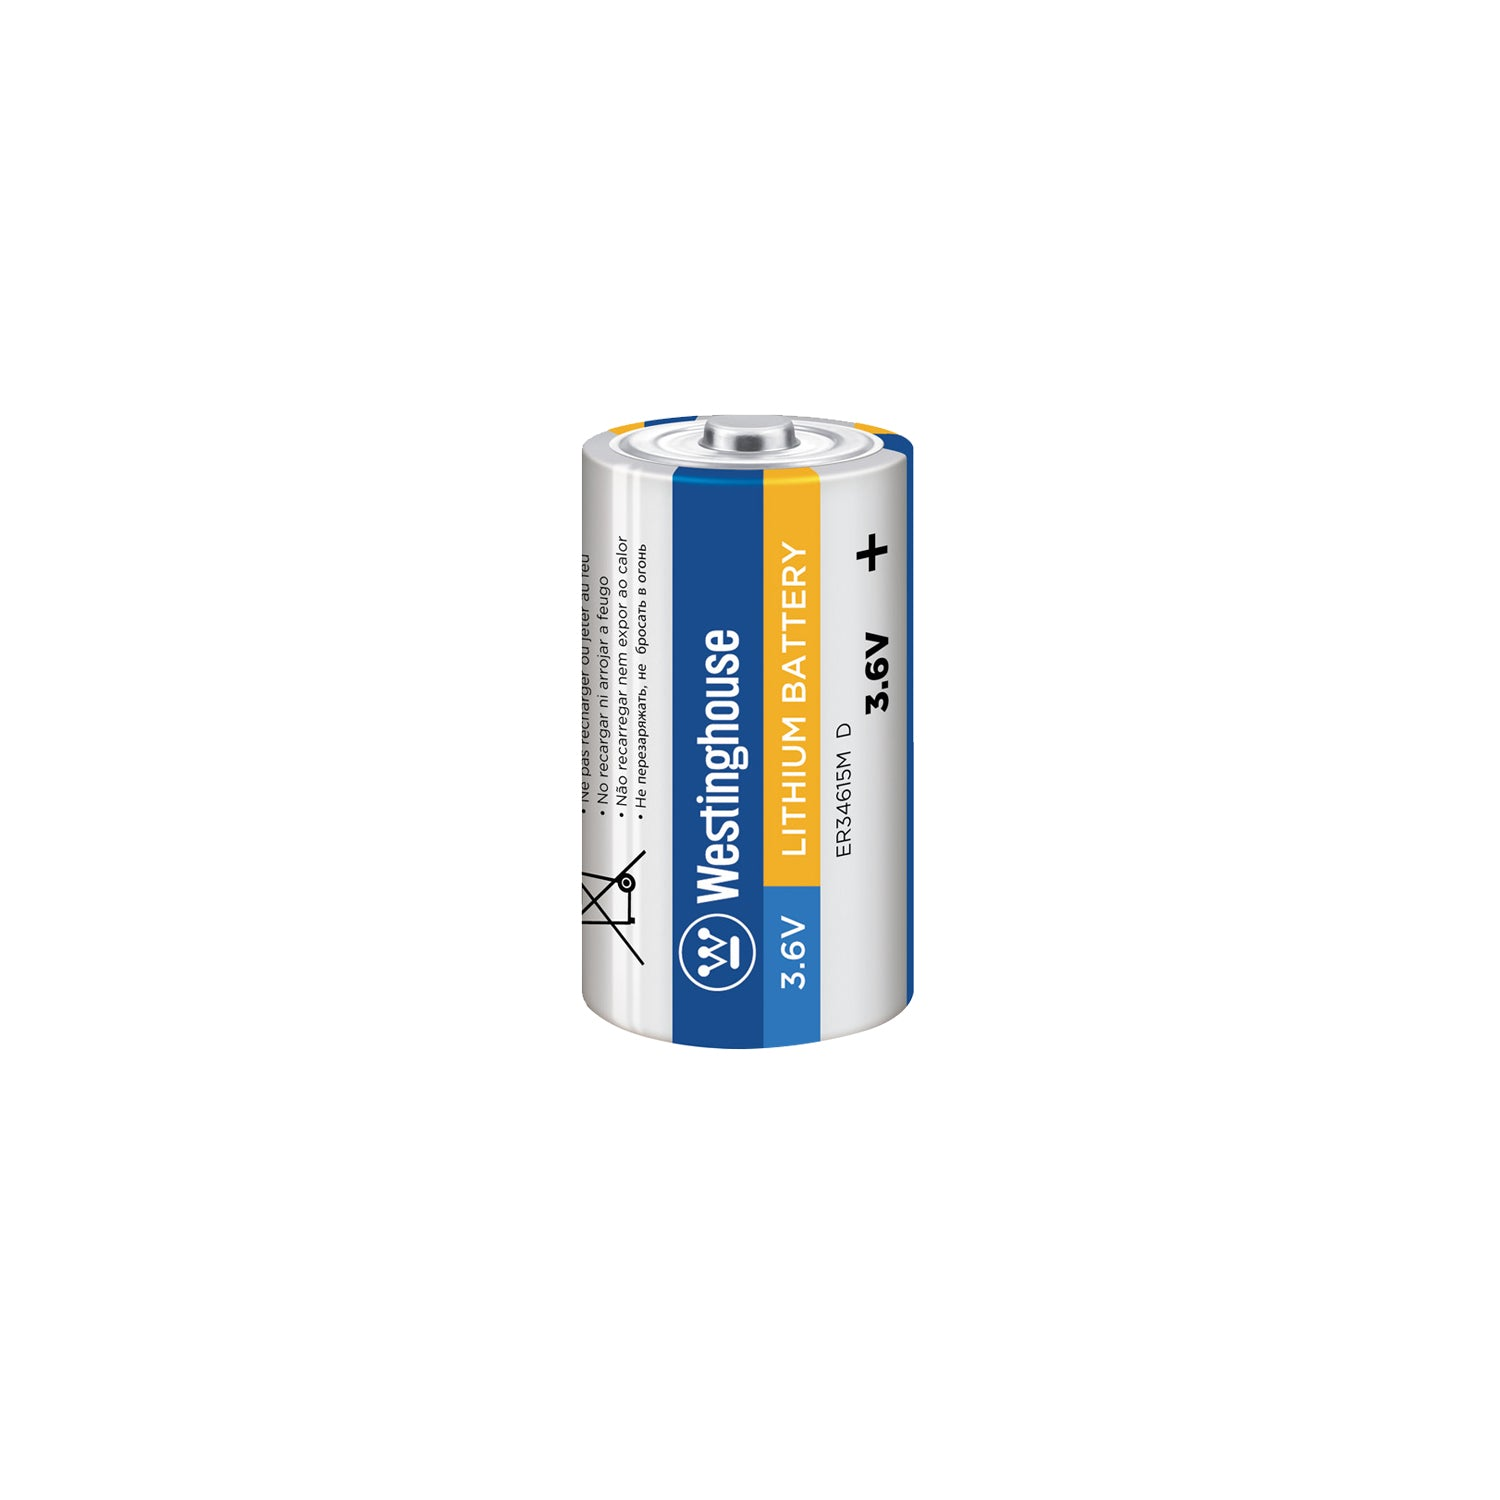 ER34615 D size 3.6V Lithium Primary Battery for Specialized Devices Bulk